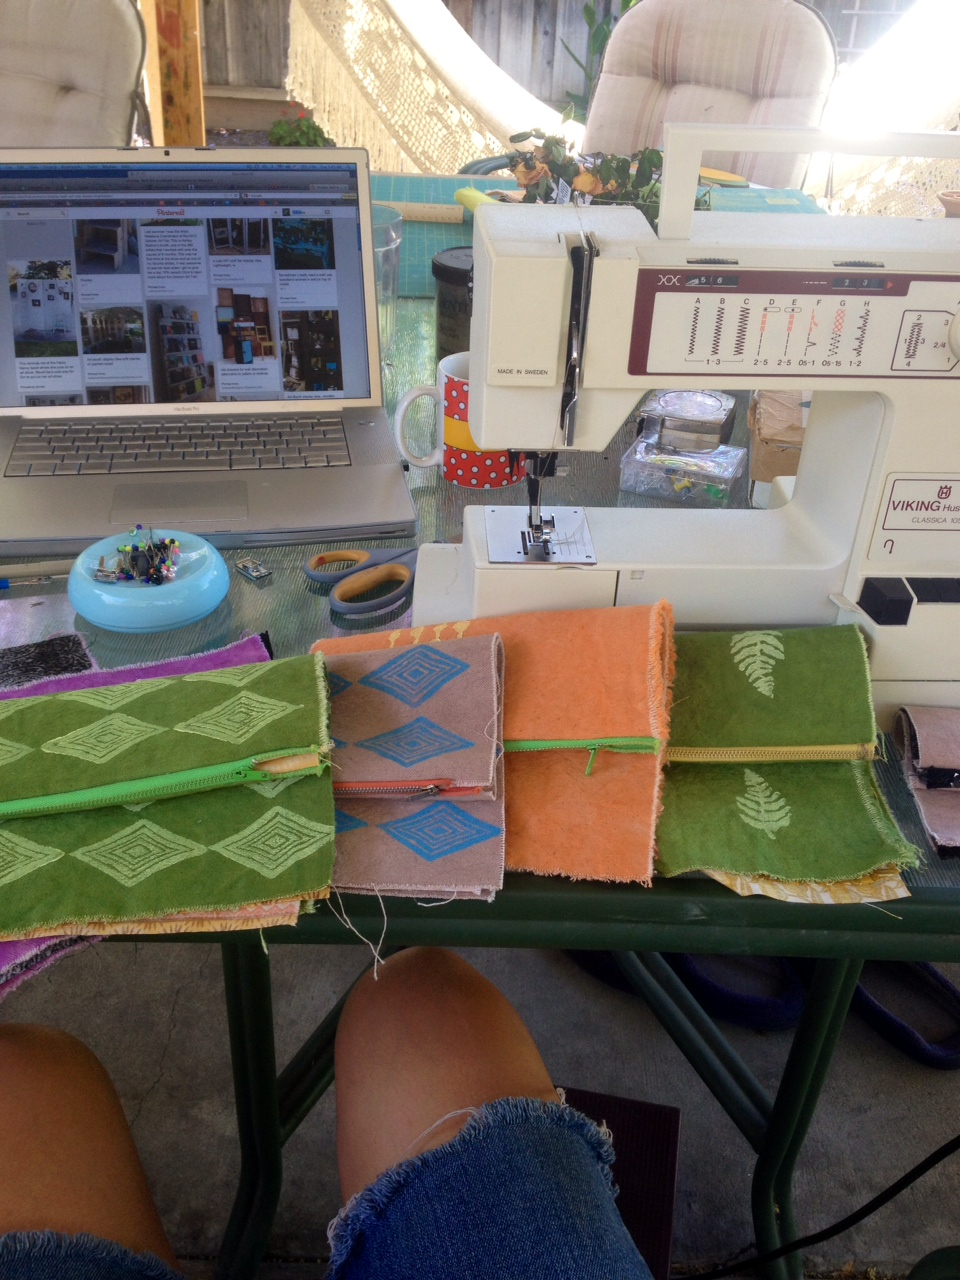 Multitasking. Getting booth ideas on  Pinterest  while arranging my bags.